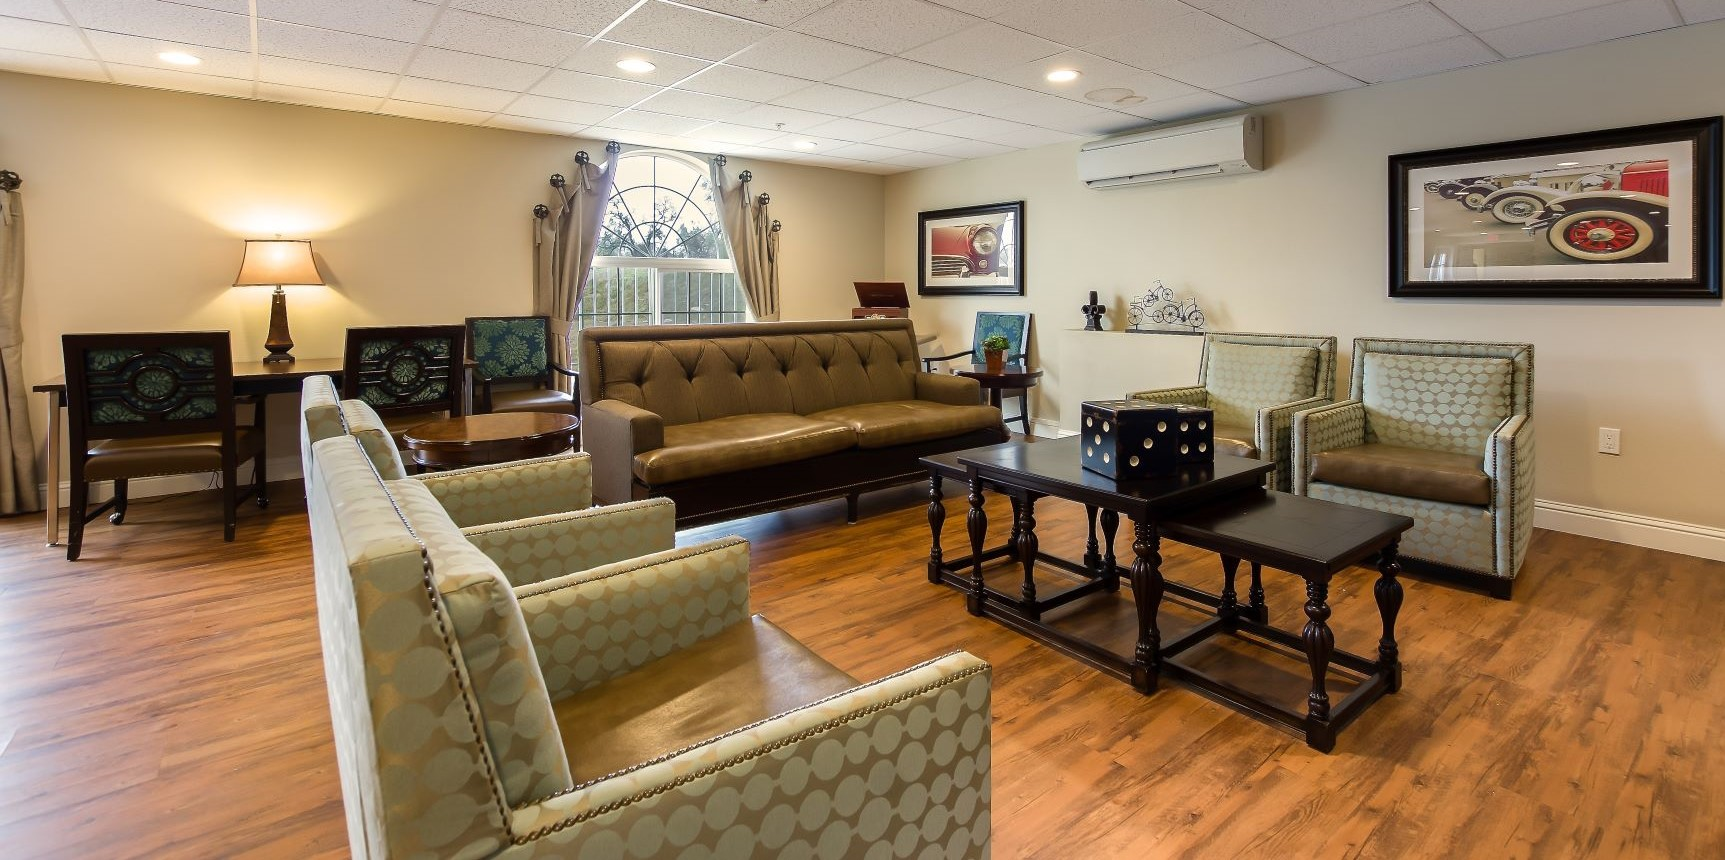 Relax and enjoy yourself at Pacifica Senior Living Country Crest